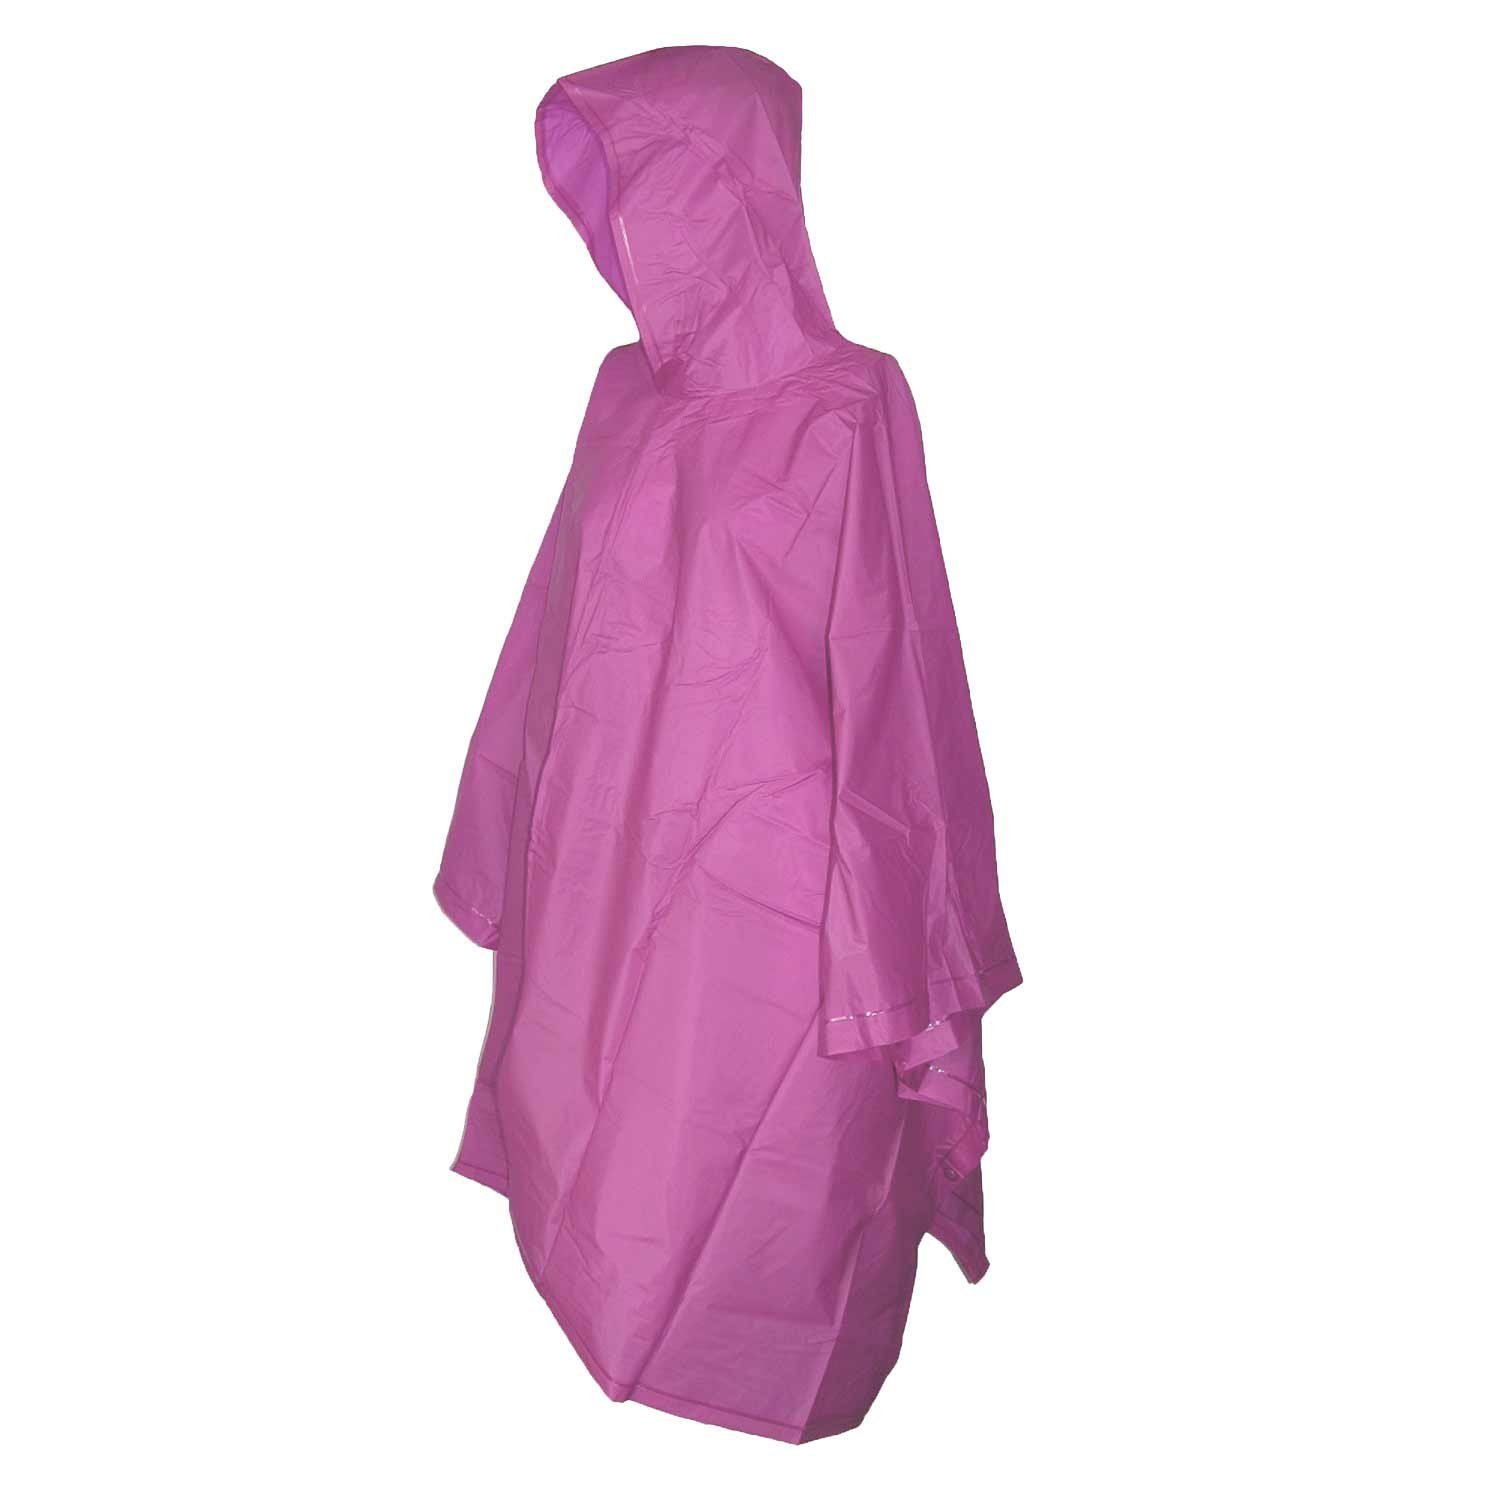 Raines Children's Emergency Poncho with Built In Hood, One Size Fits Most, Pink, 3-pack